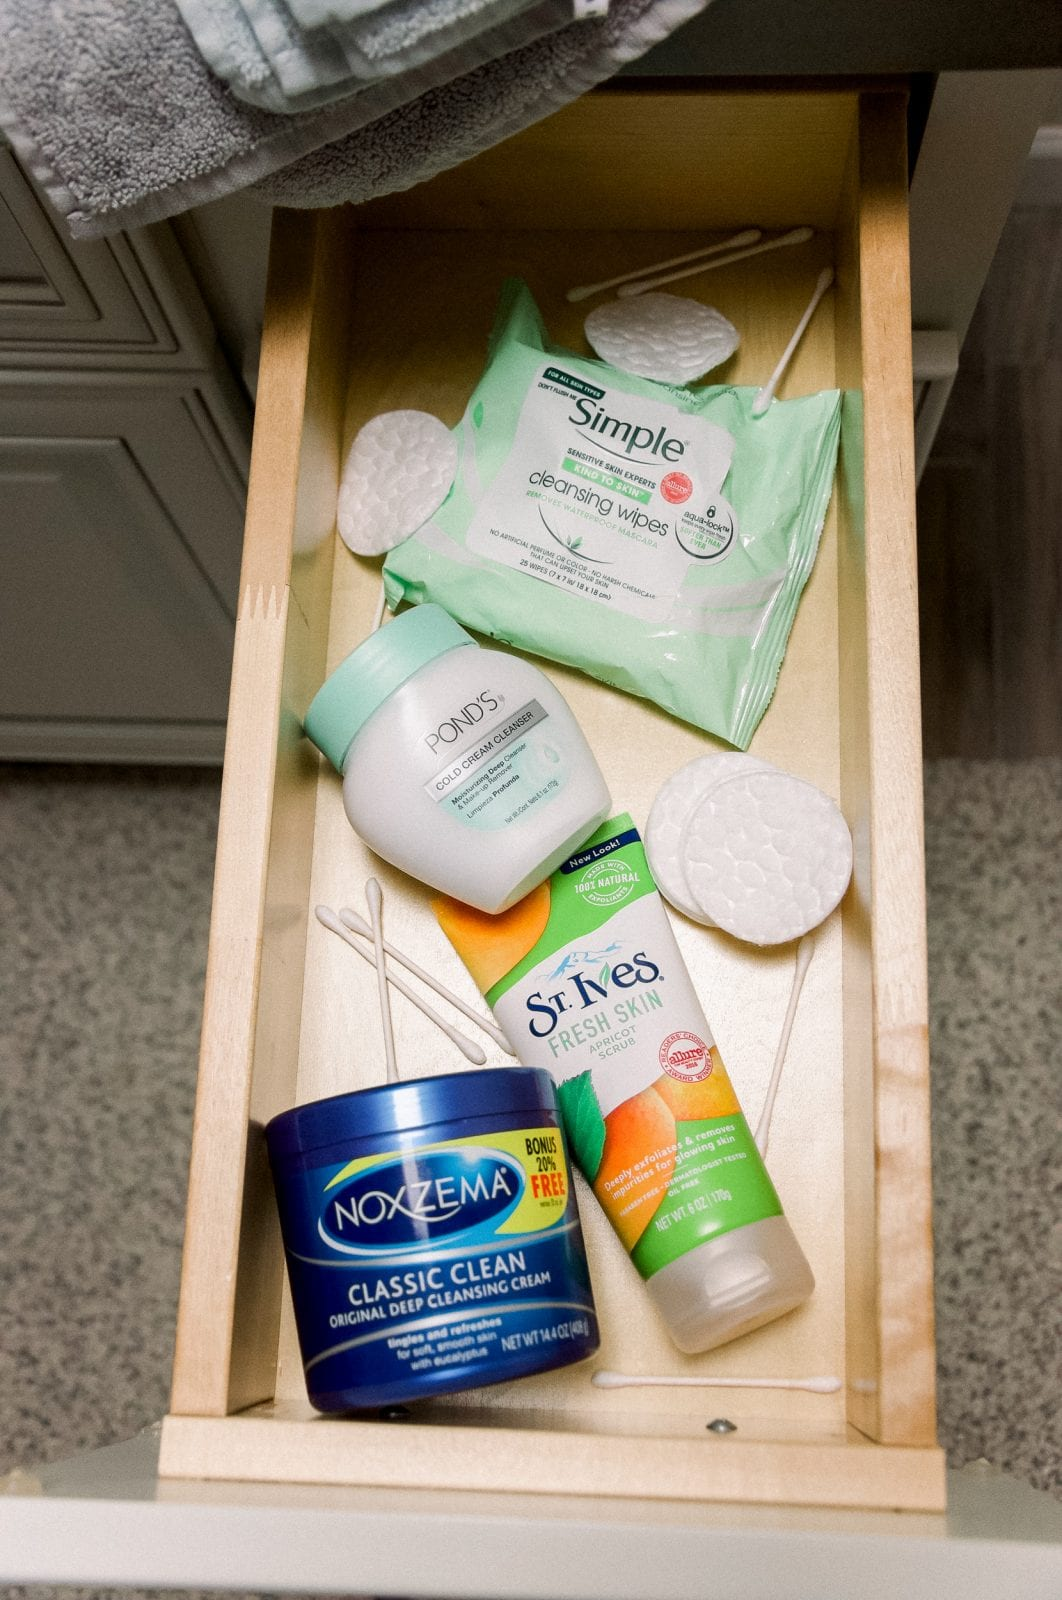 This is a close up of my bathroom drawer featuring Ponds, Noxzema, St. Ives and Simple.